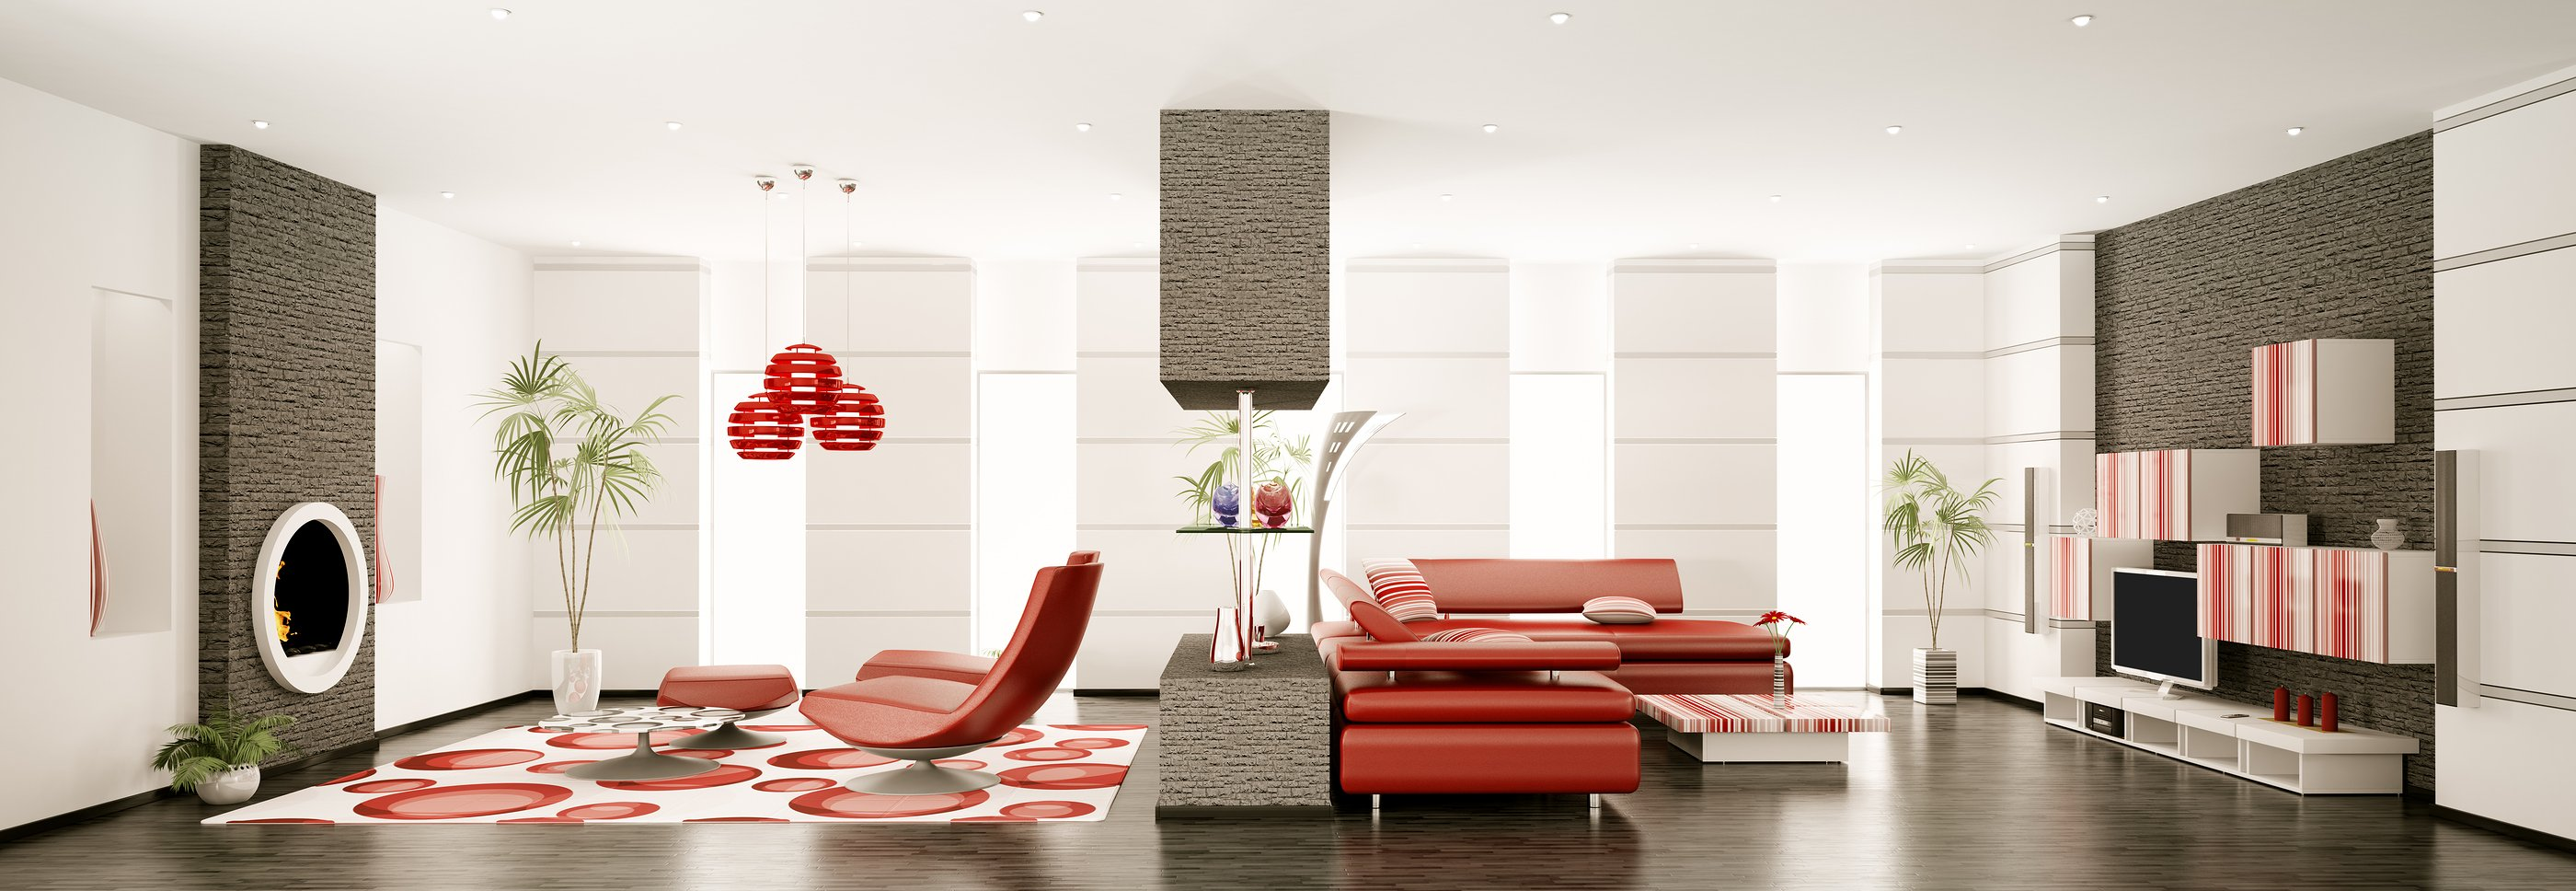 Red Chairs, Red Couches, Modern Simplistic Interior Design